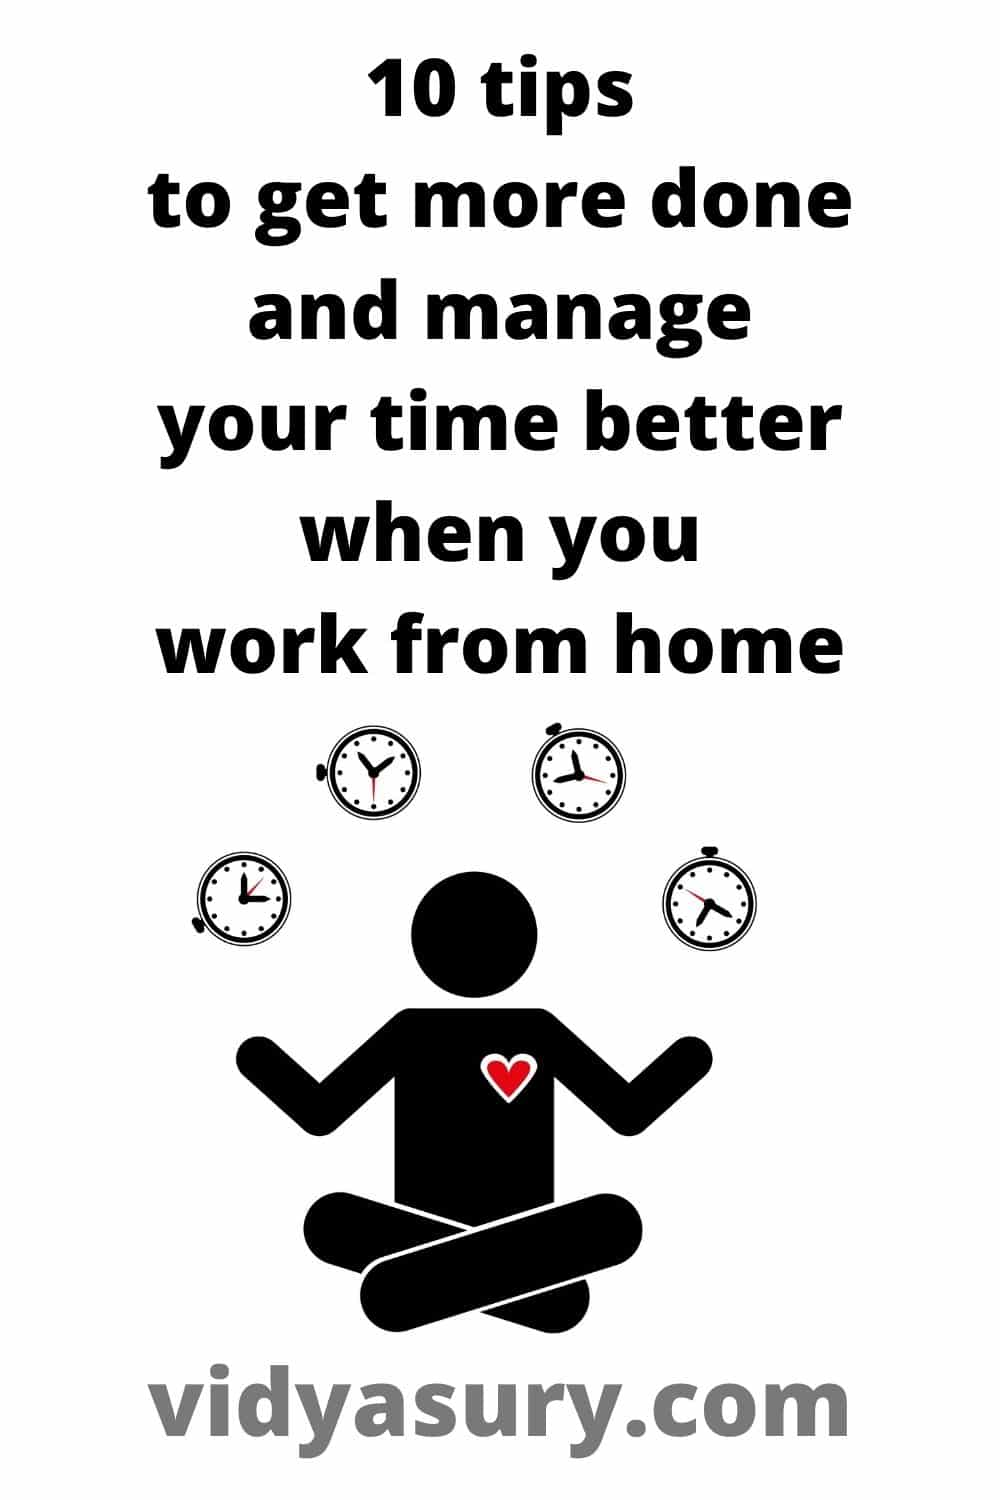 10 tips to improve your time management skills and get more done when you work from home